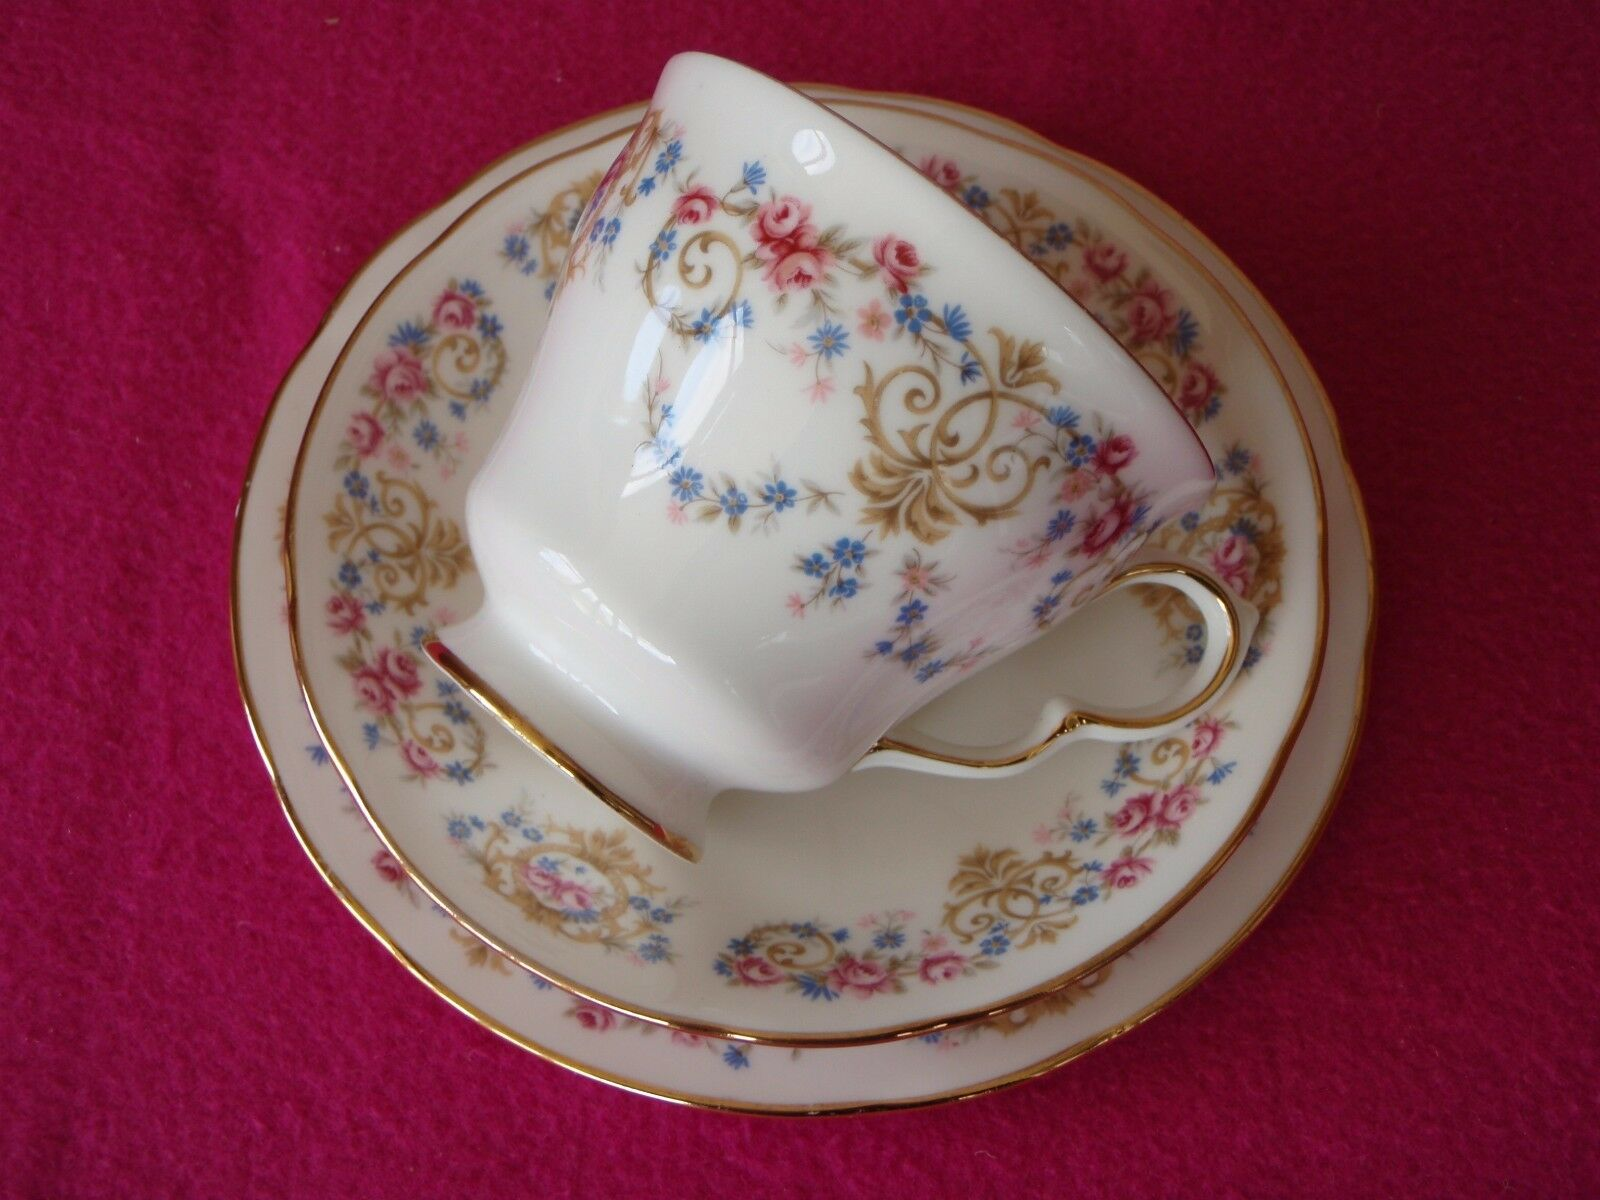 dating fine bone china Seyei china - back stamped fine seyei china japan on every piece but no numbers can be i have an 18 piece seyei china tea set of the fluer pattern dating back to.